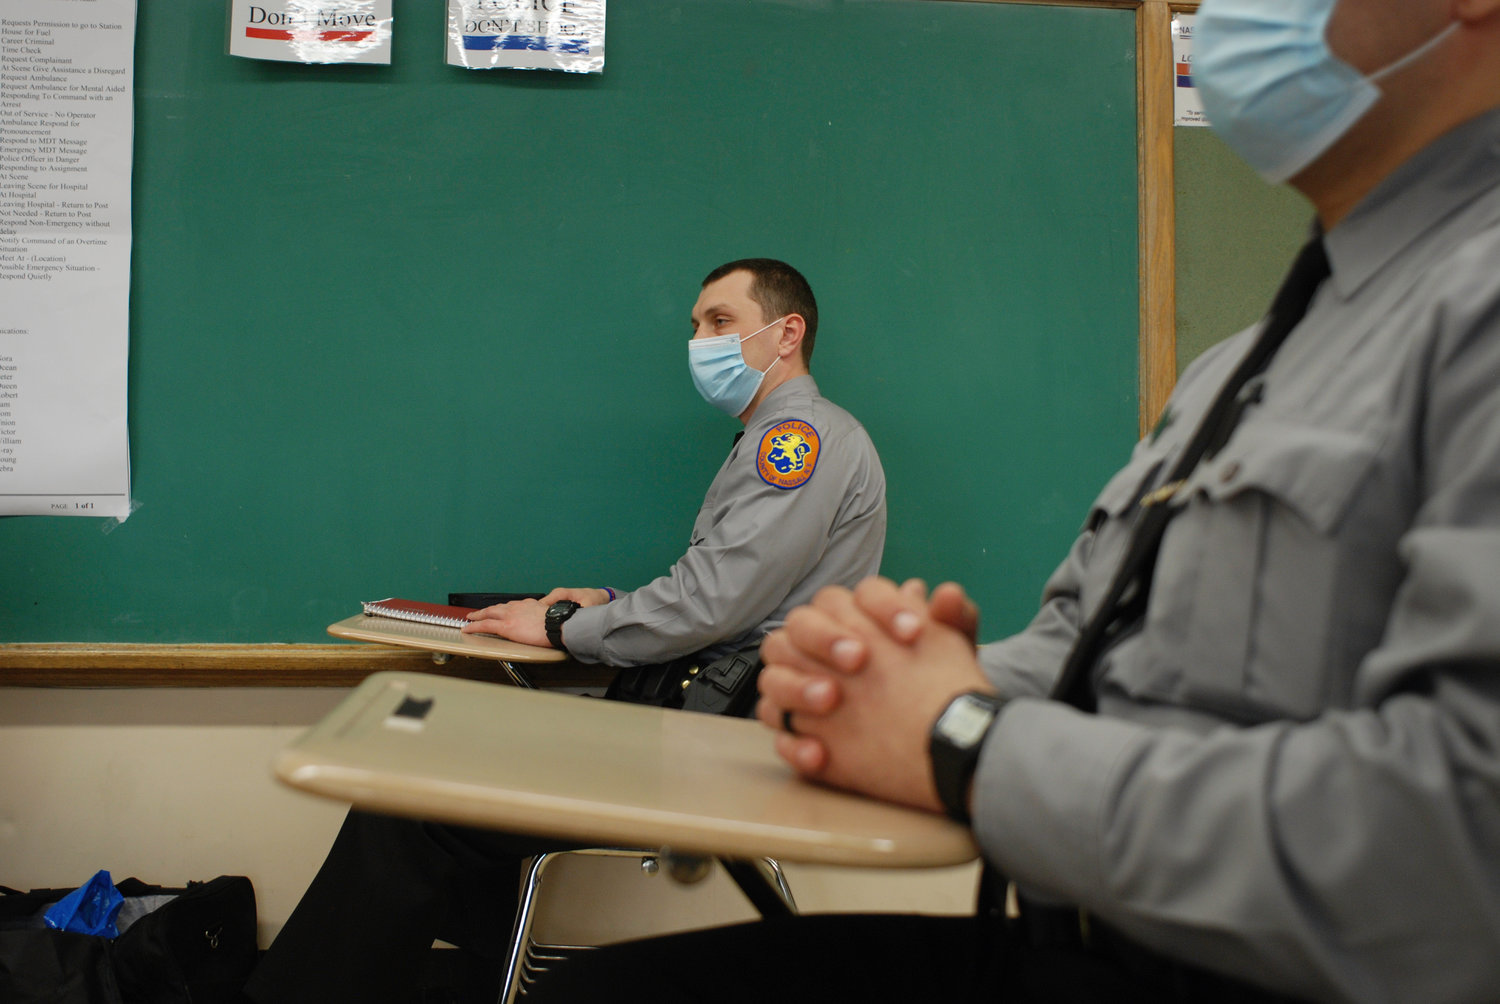 Mask wearing and social distancing are adhered to in every classroom.